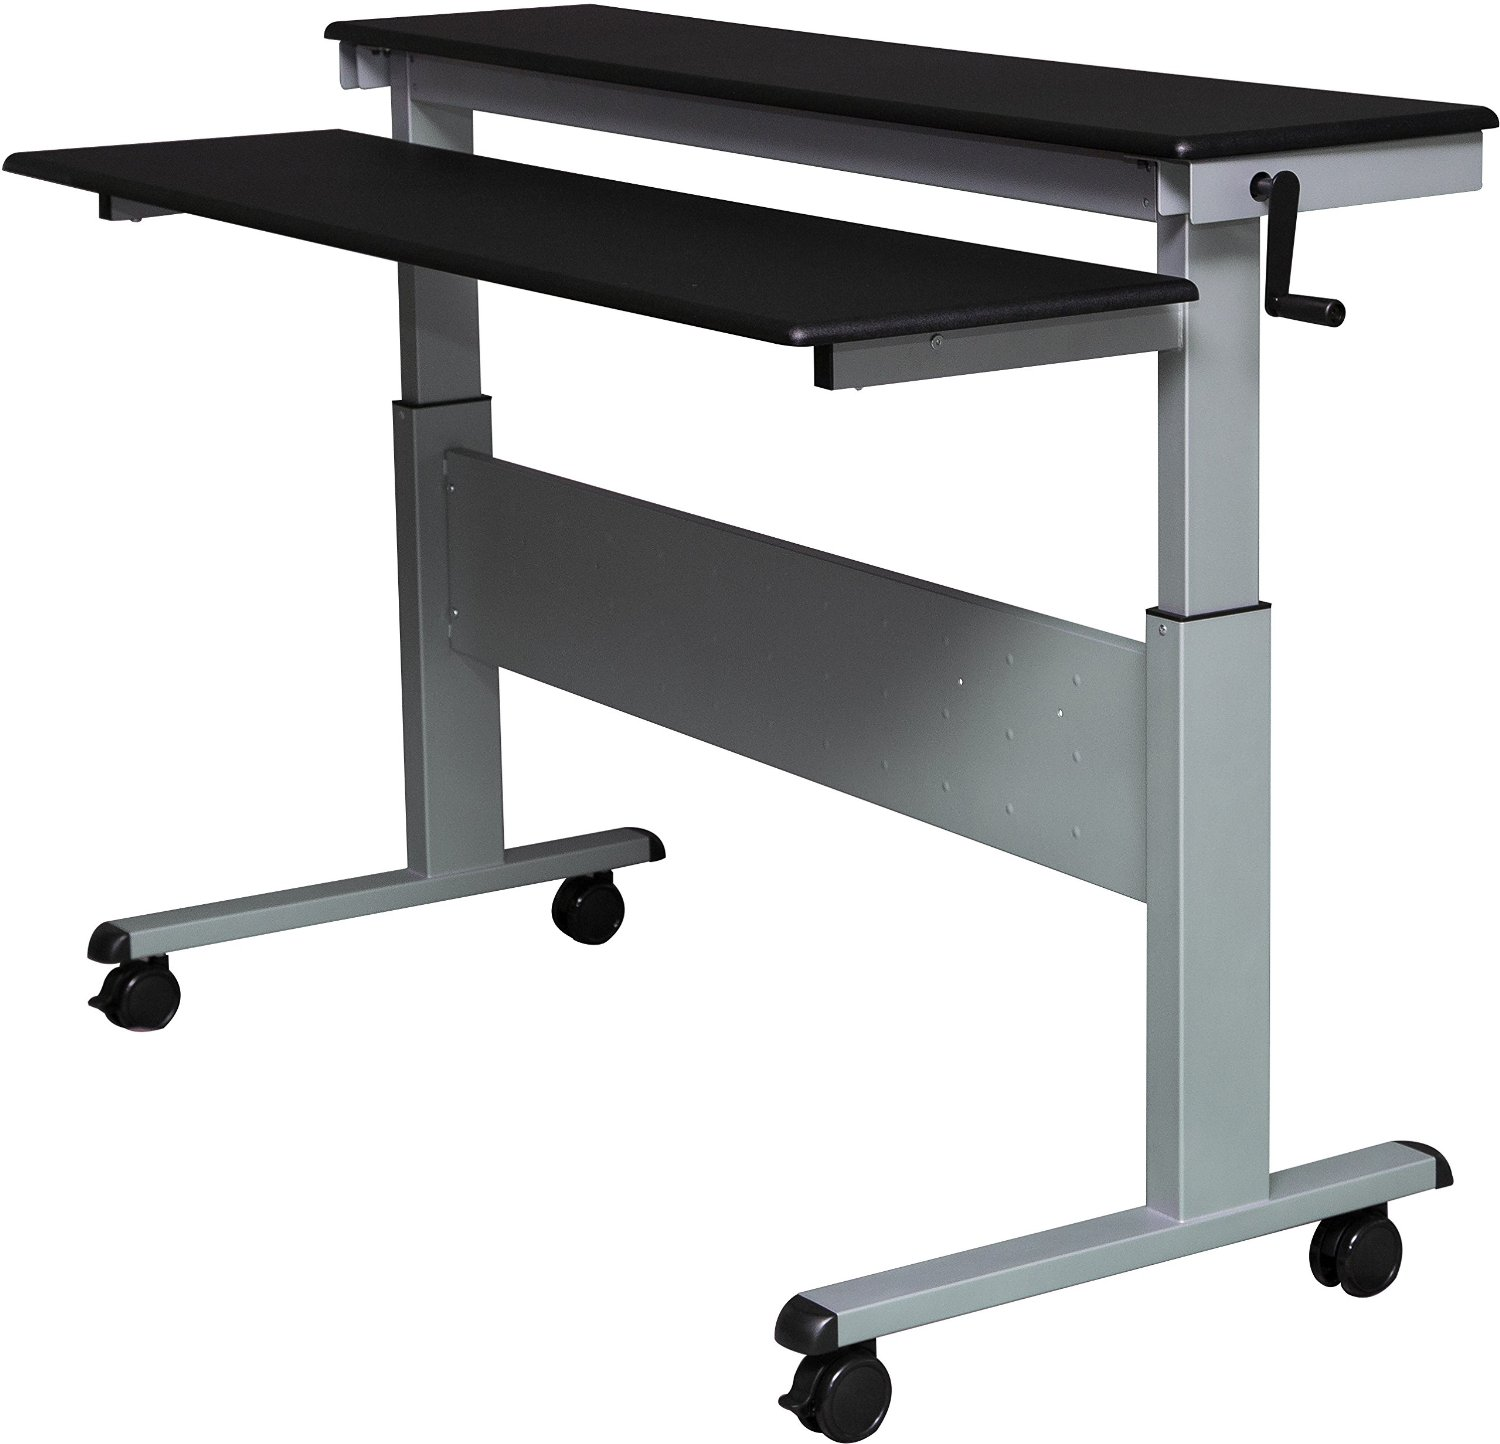 Crank Adjule Height Sit To Stand Up Desk With Heavy Duty Steel Frame